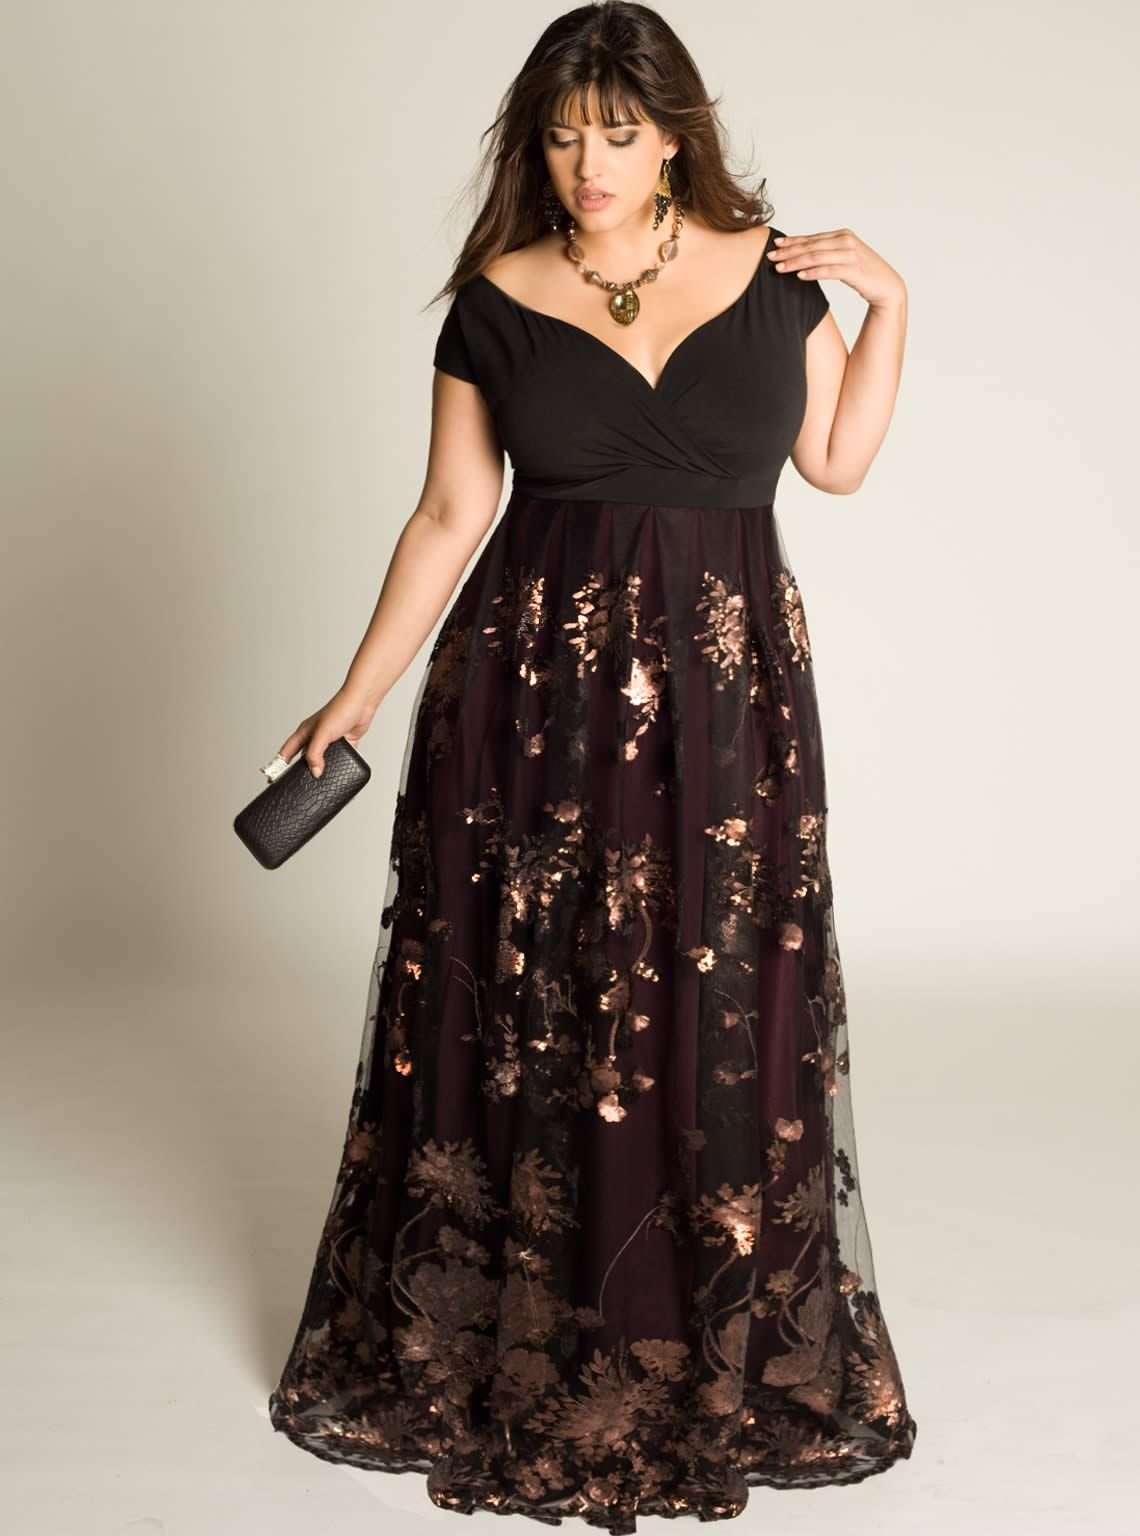 plus size chic | fashion | pinterest | gowns, goddesses and clothes